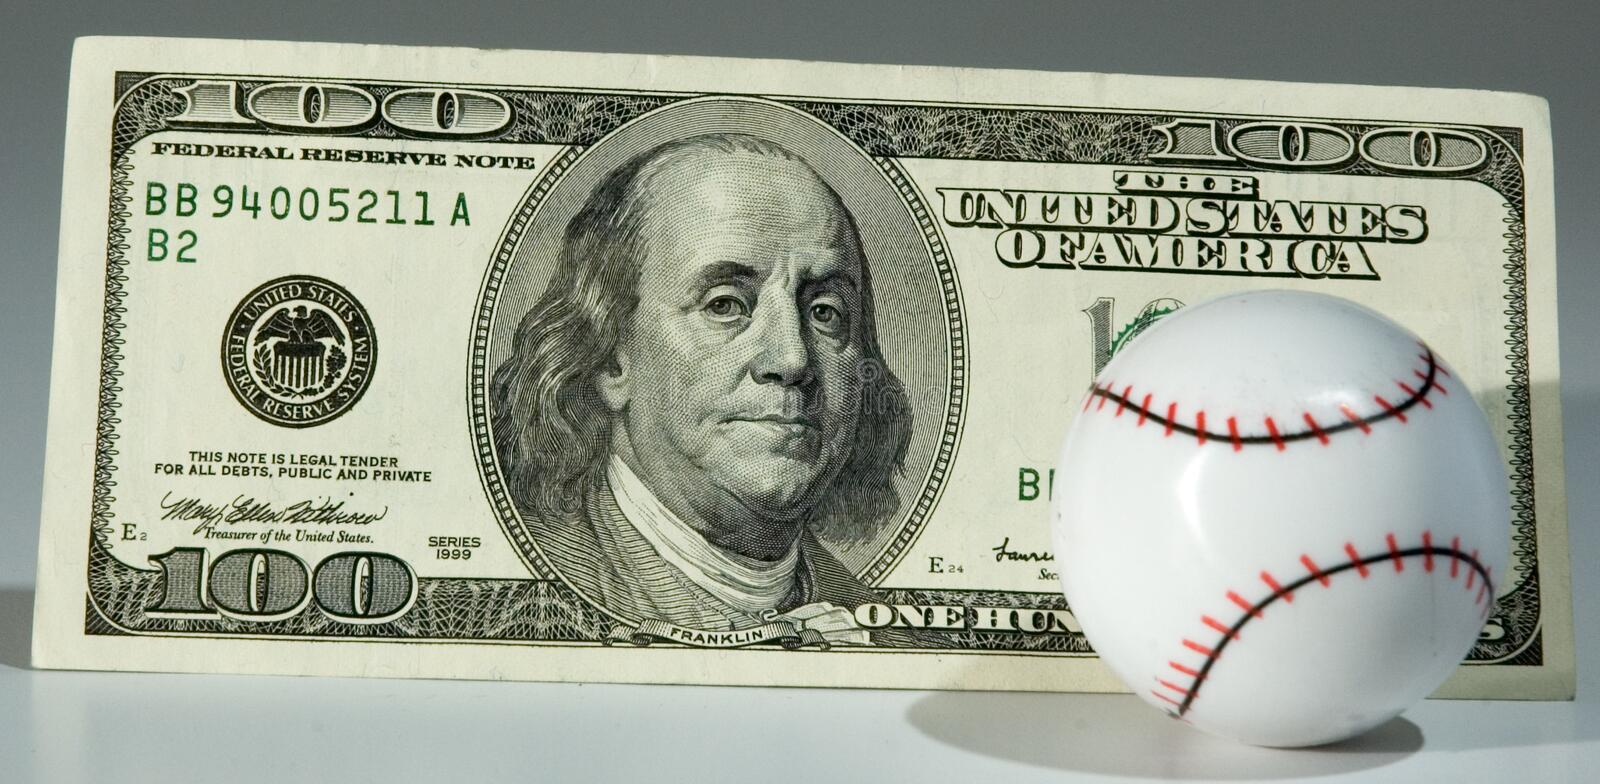 Base-ball et $100.00 photos stock